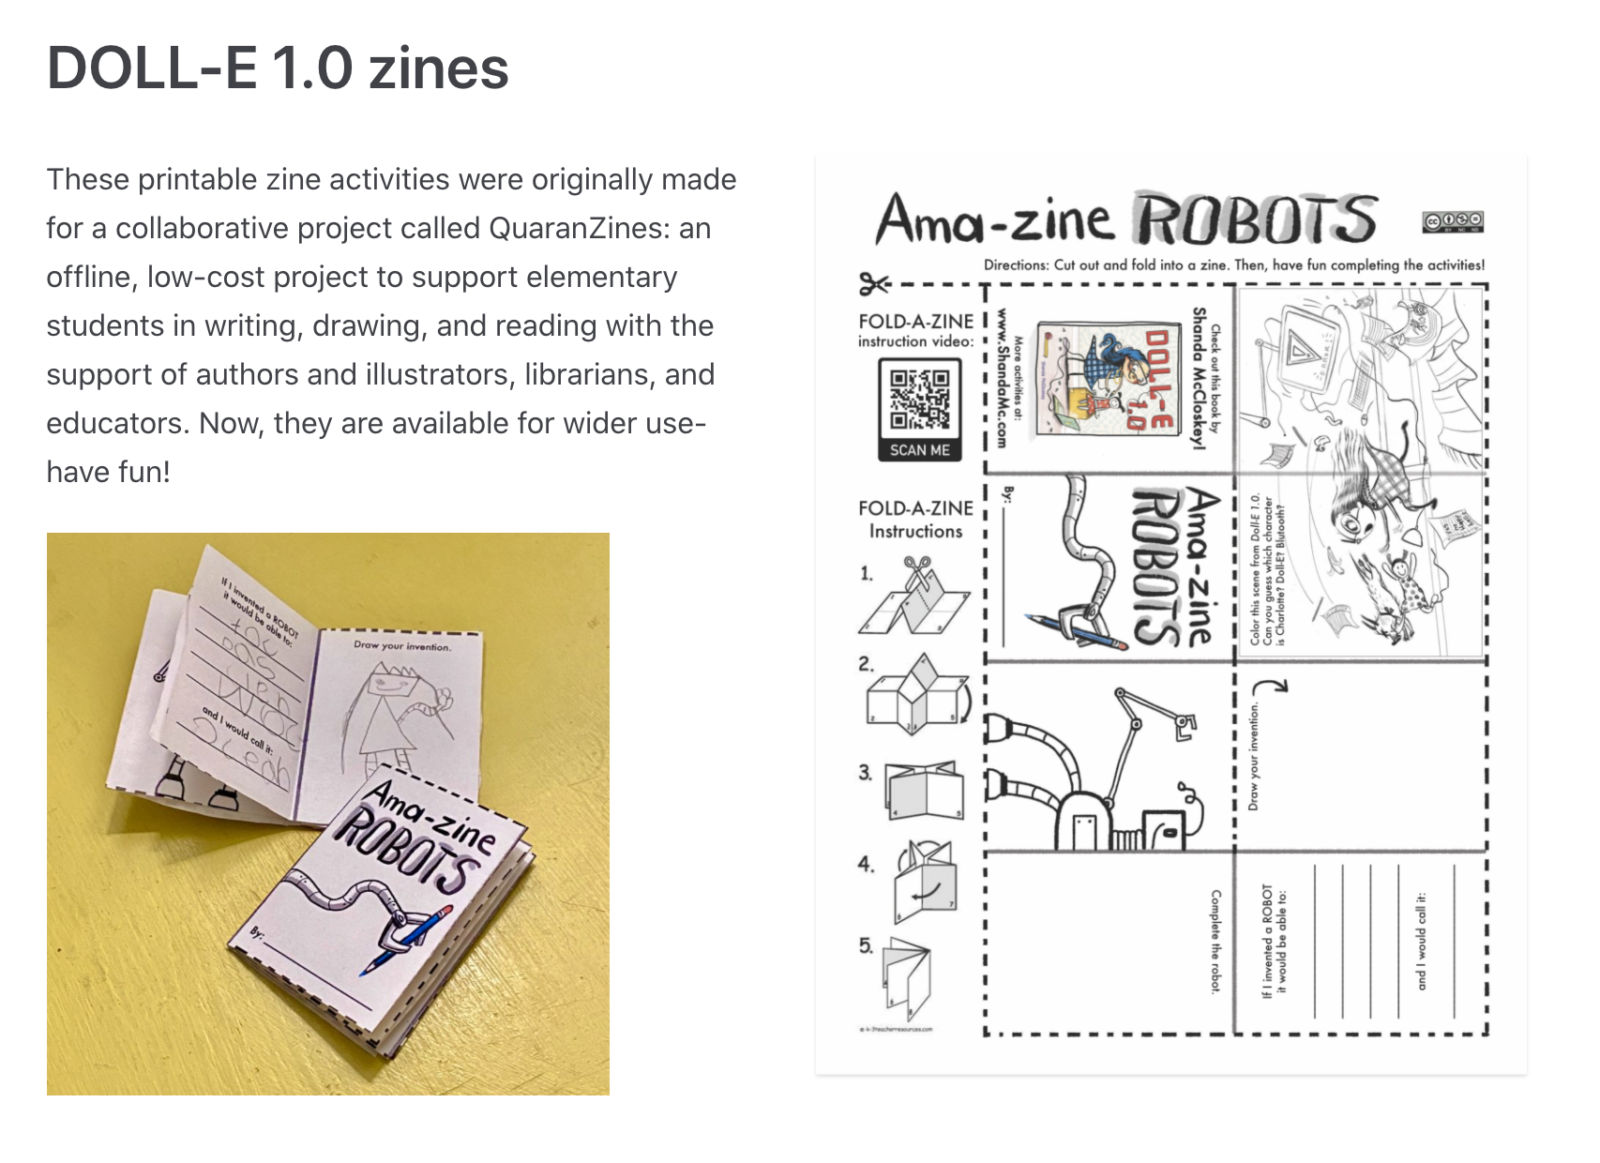 Example of Shanda McCloskey's ROBOT zine.